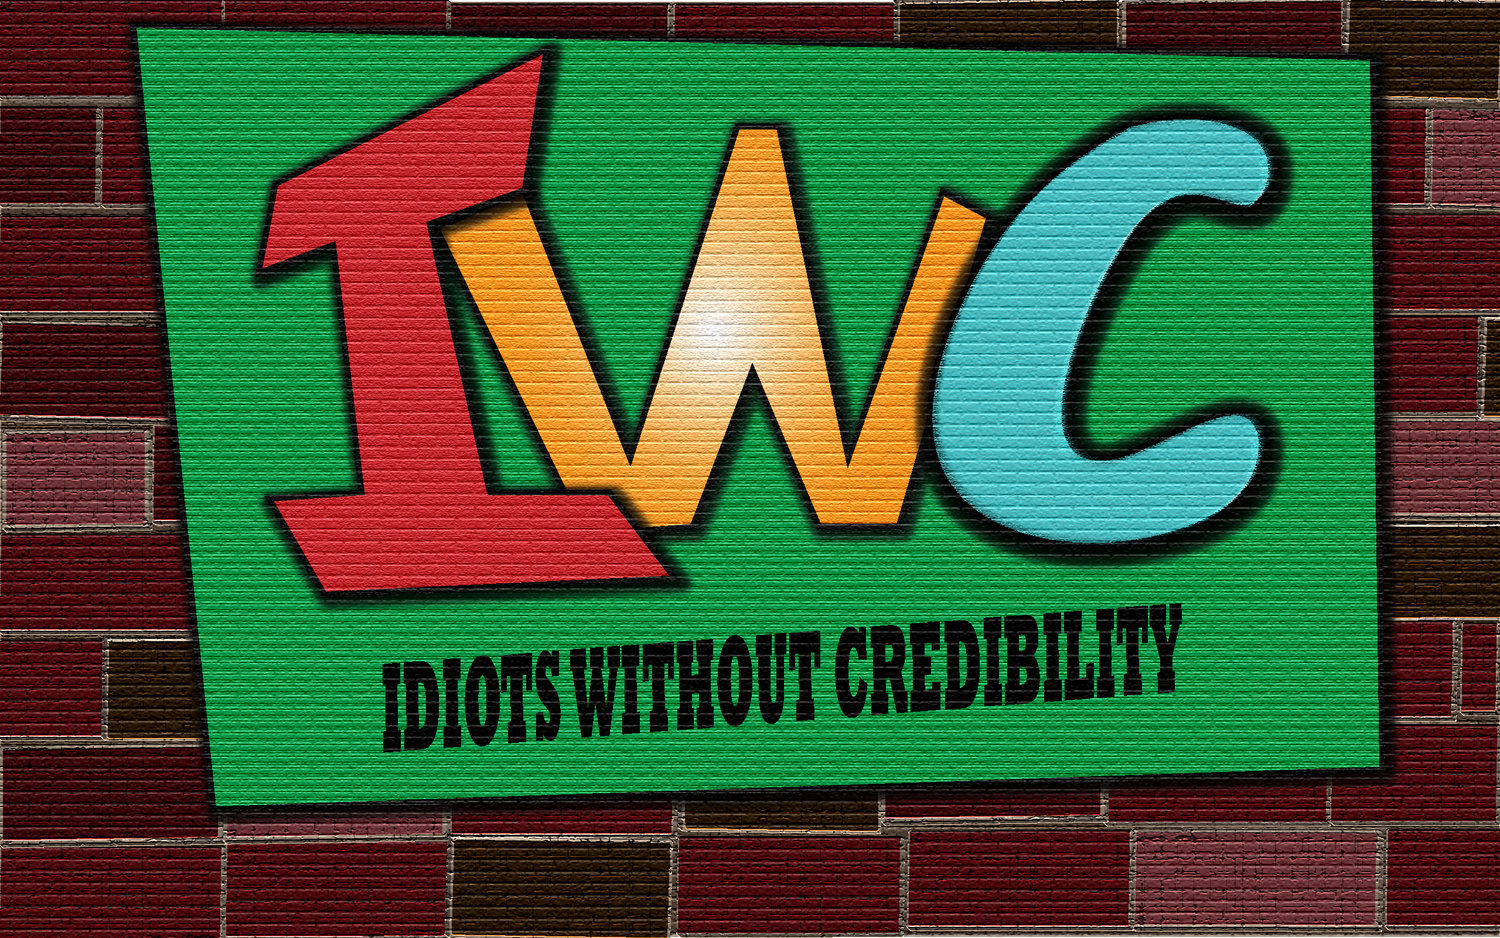 Idiots Without Credibility